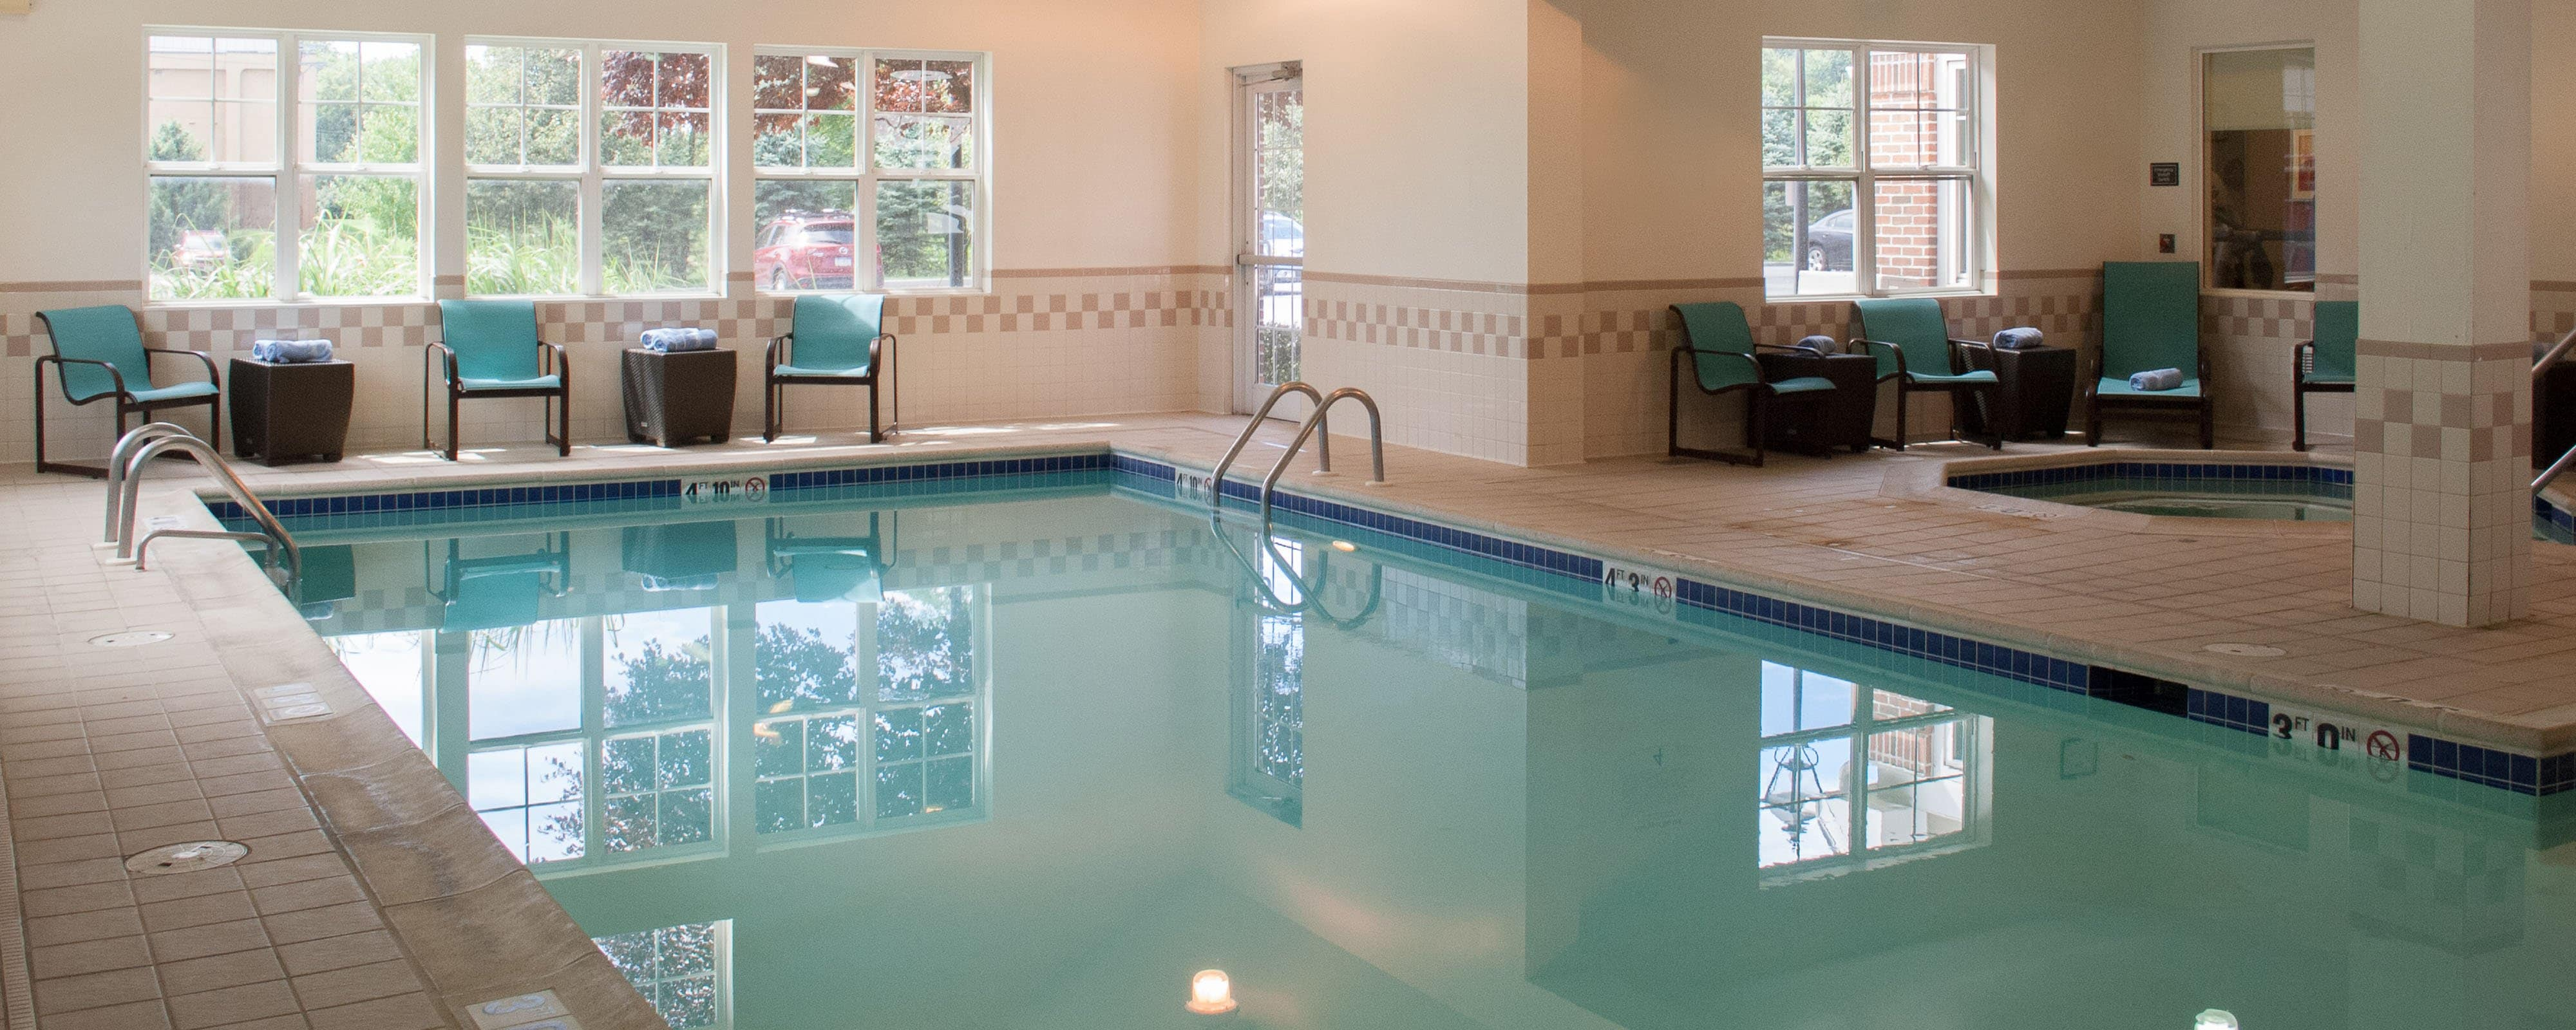 Hotels In Carlisle Pa With Indoor Pool Residence Inn Harrisburg Carlisle